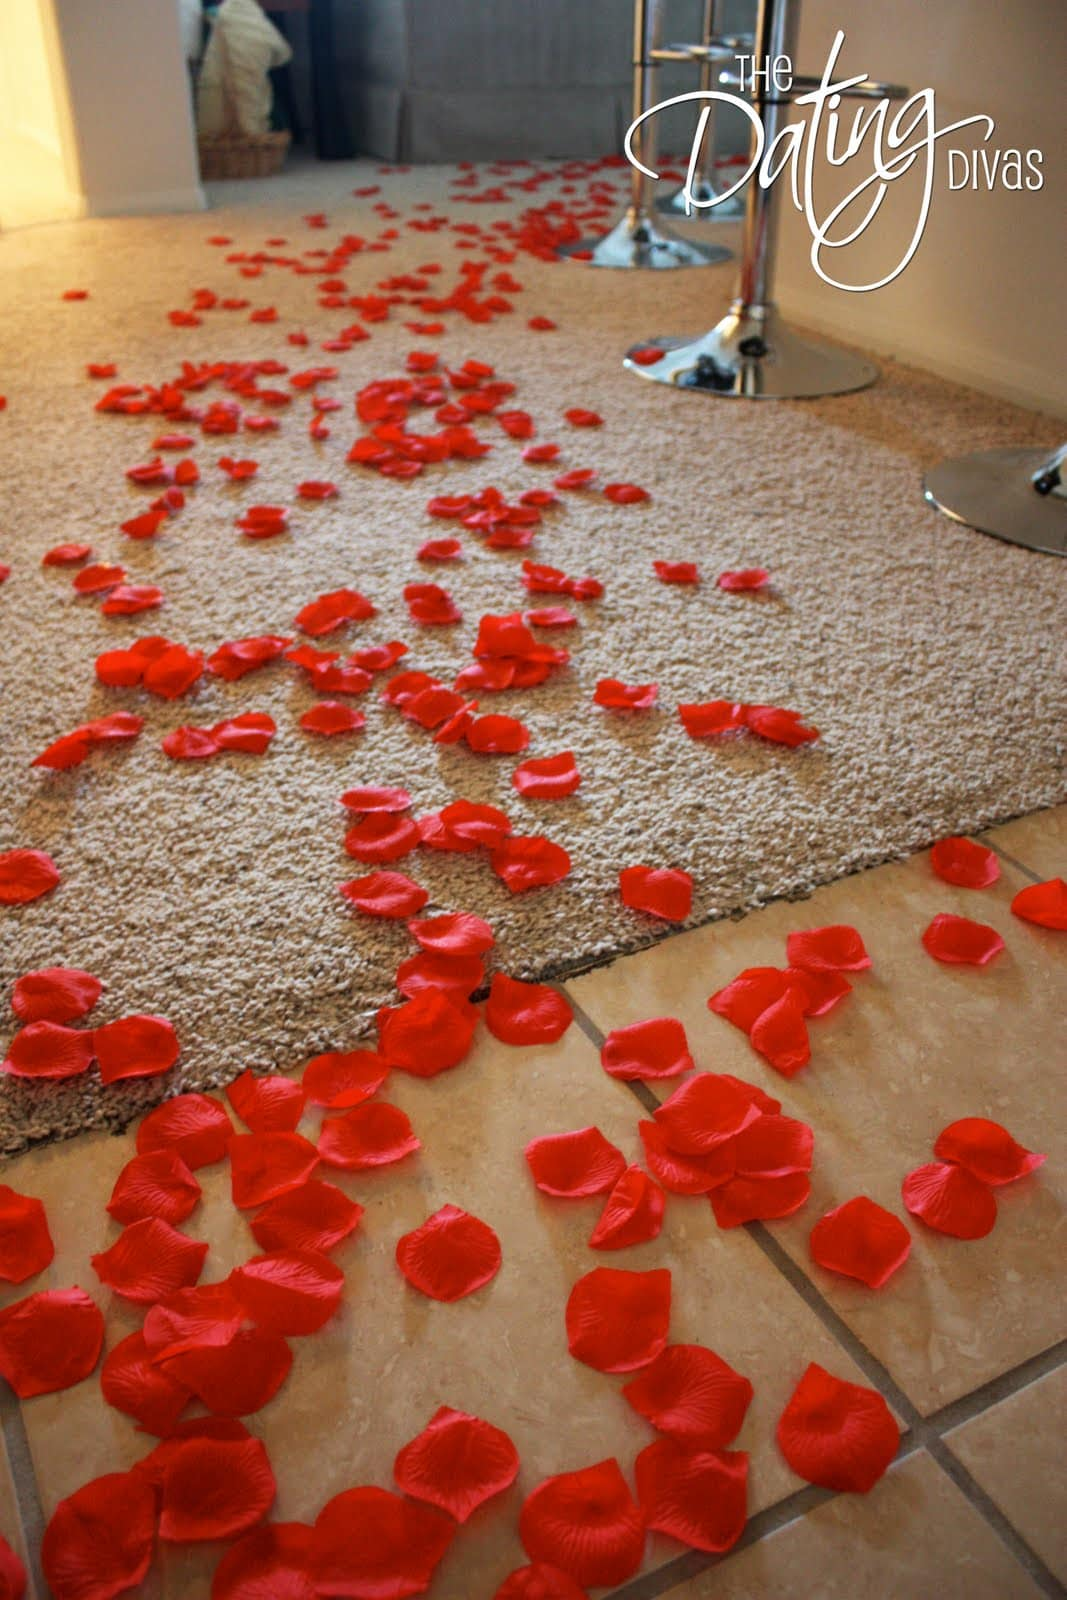 Set the mood with rose petals for romance with your spouse for Valentine day at home